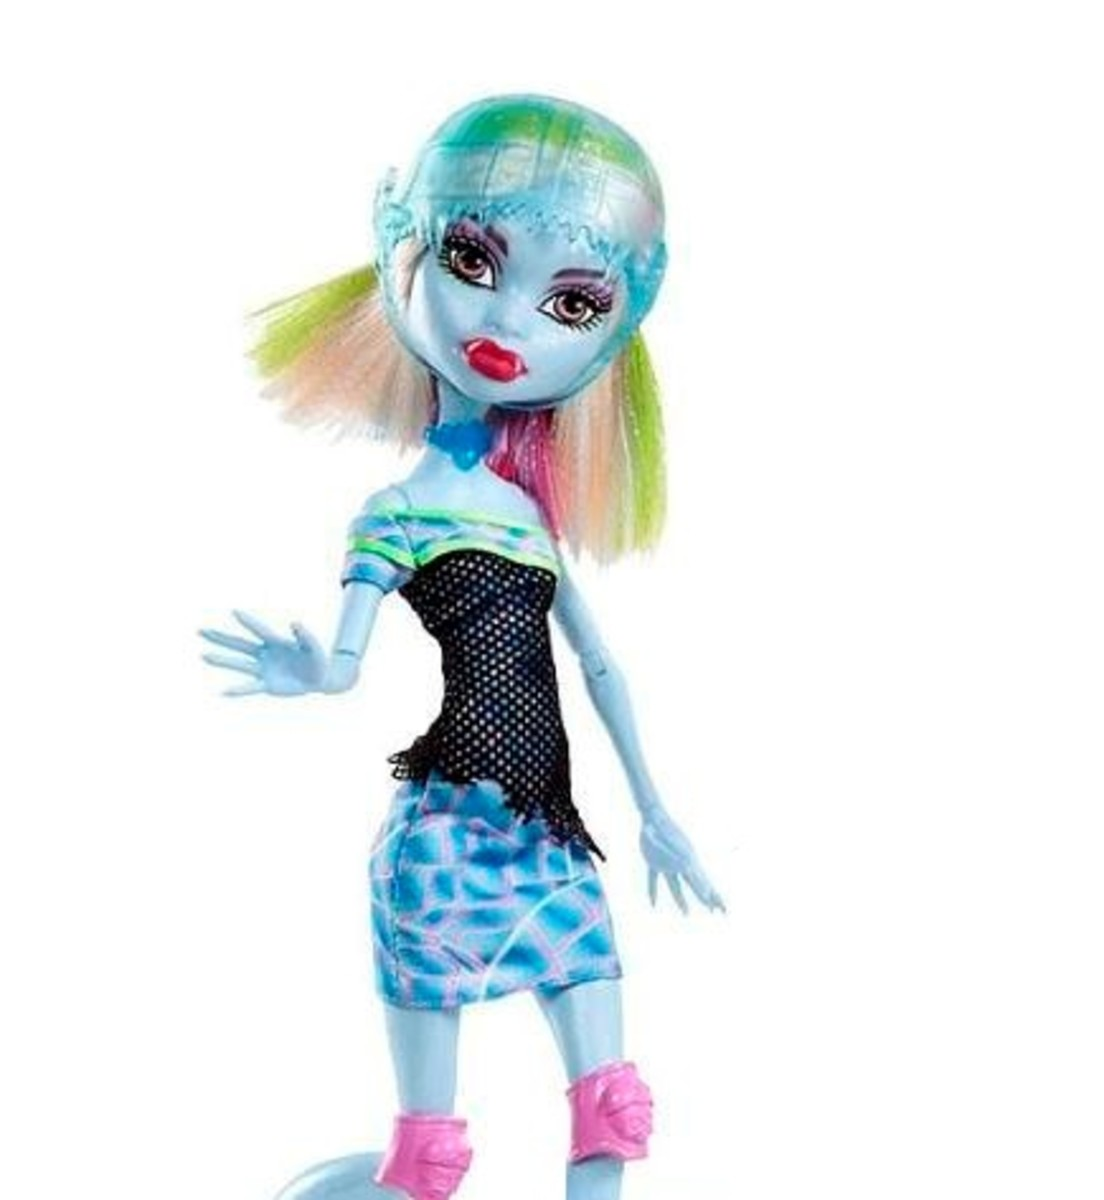 abbey-bominable-dolls-from-monster-high-list-of-dolls